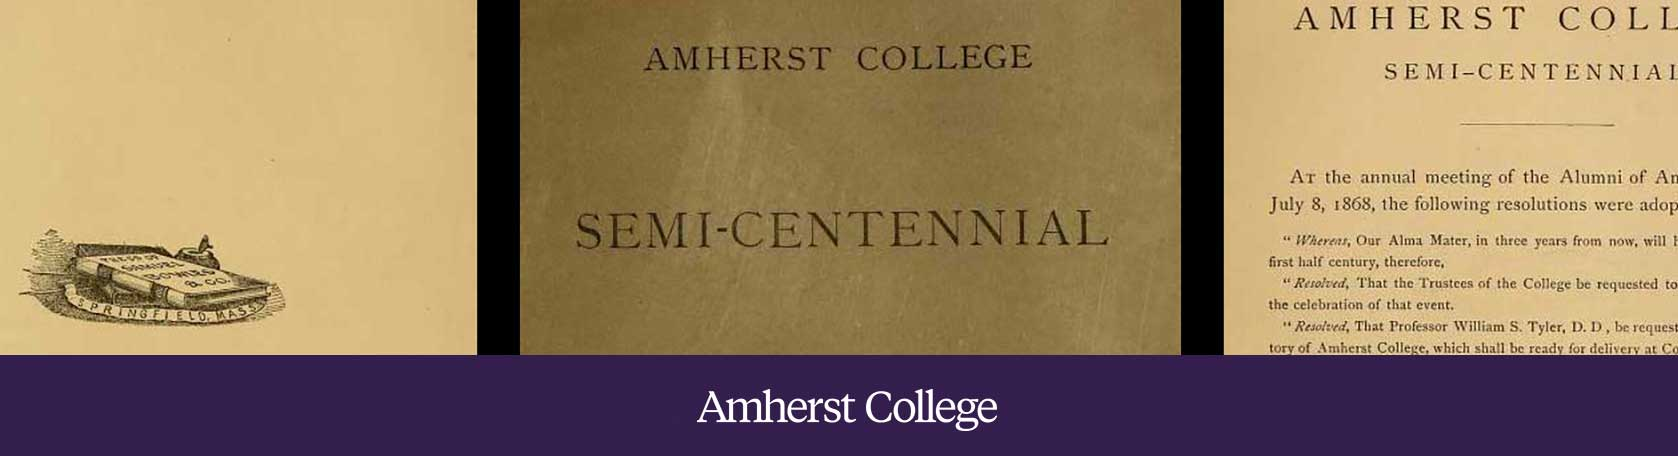 Pages from Amherst College's 1871 Semi-Centennial printed program